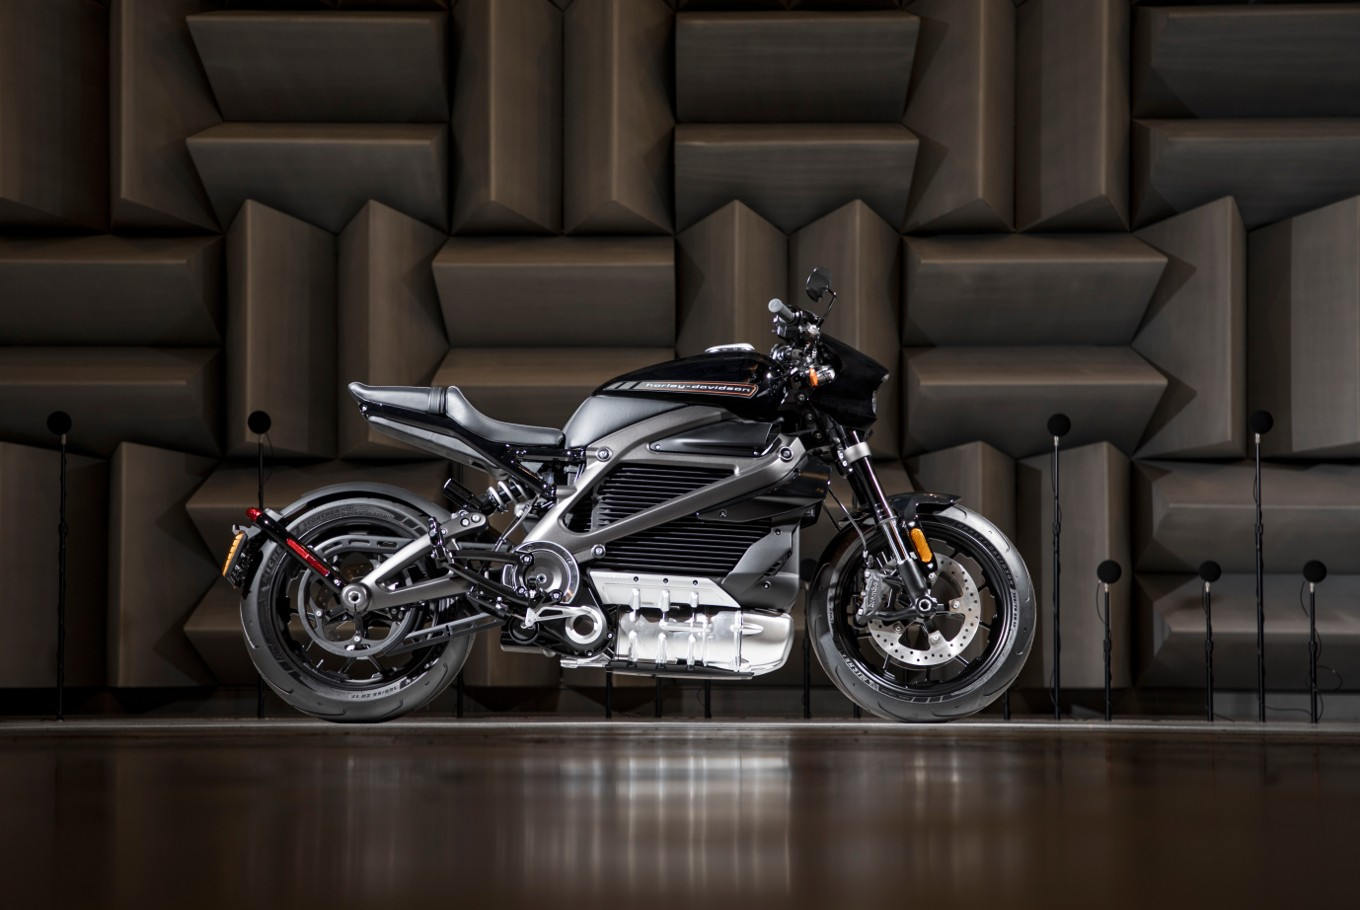 Harley-Davidson to launch first electric motorcycle in 2019